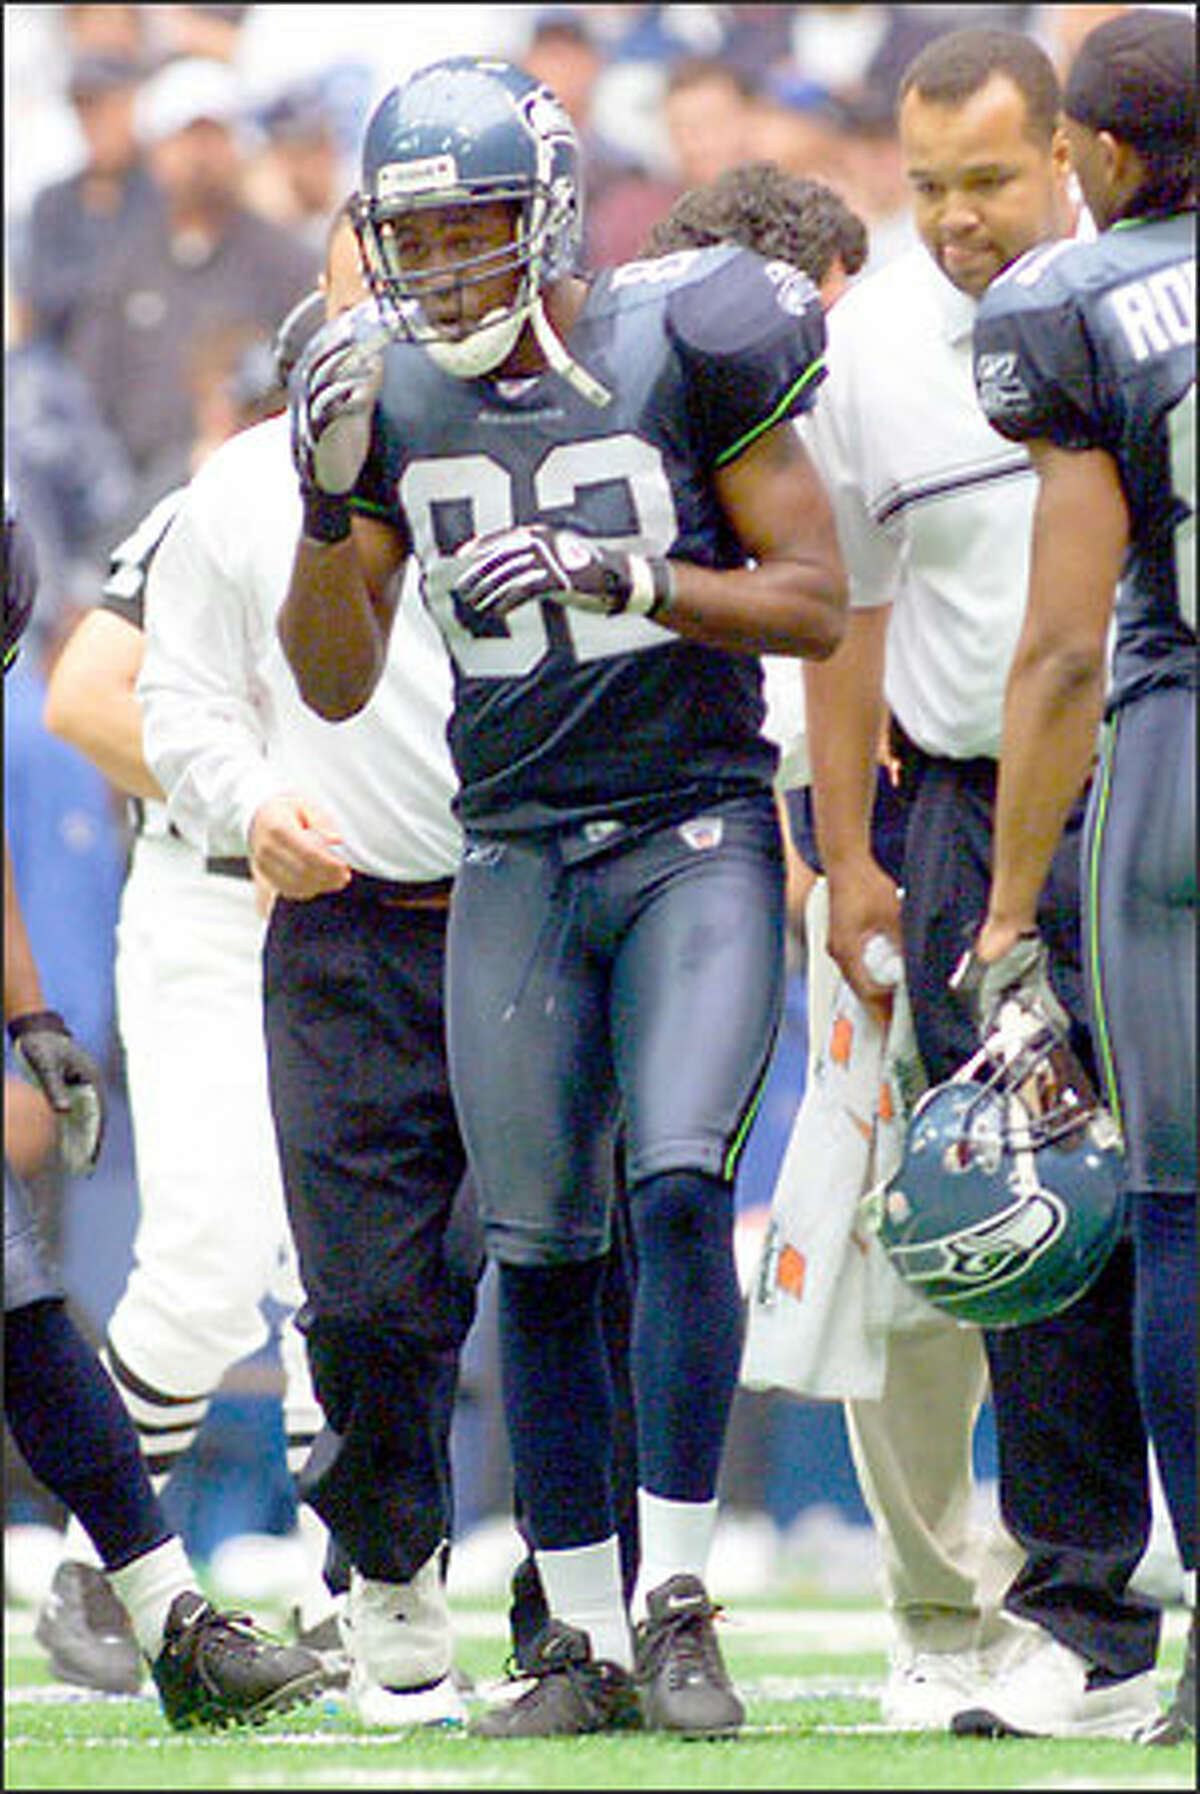 Wide receiver Darrell Jackson wobbles off the field after being struck in the helmet and jaw by Cowboys strong safety Darren Woodson. He later suffered a seizure in the locker room and was taken to the hospital.